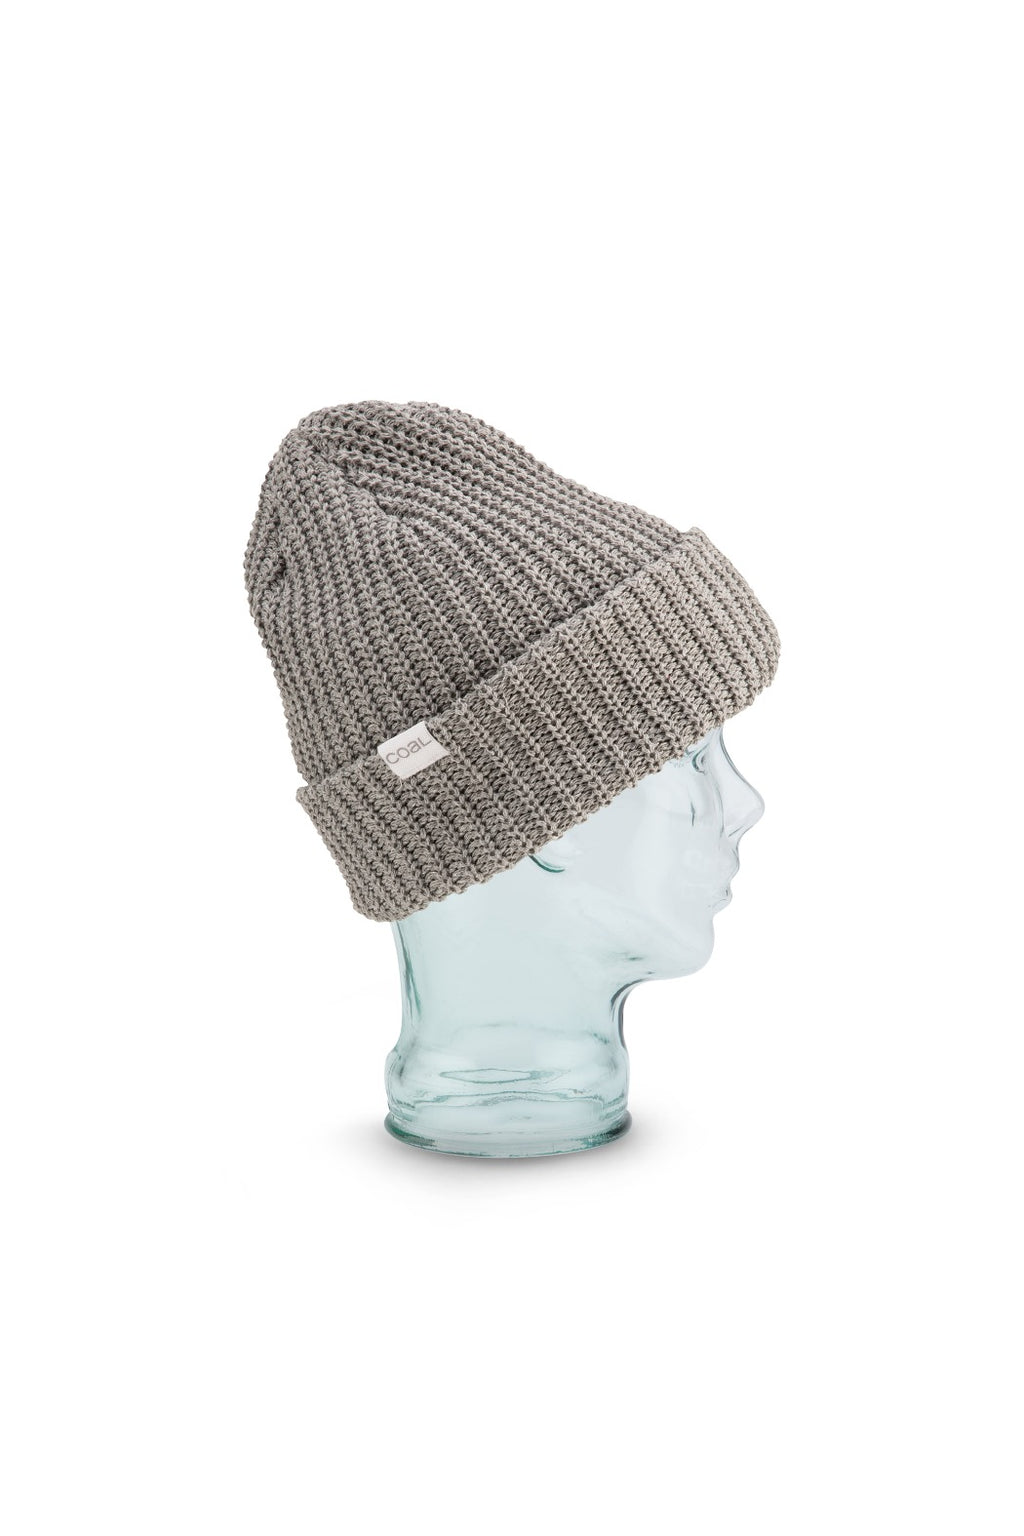 Coal Eddie Beanie in Heather Gray